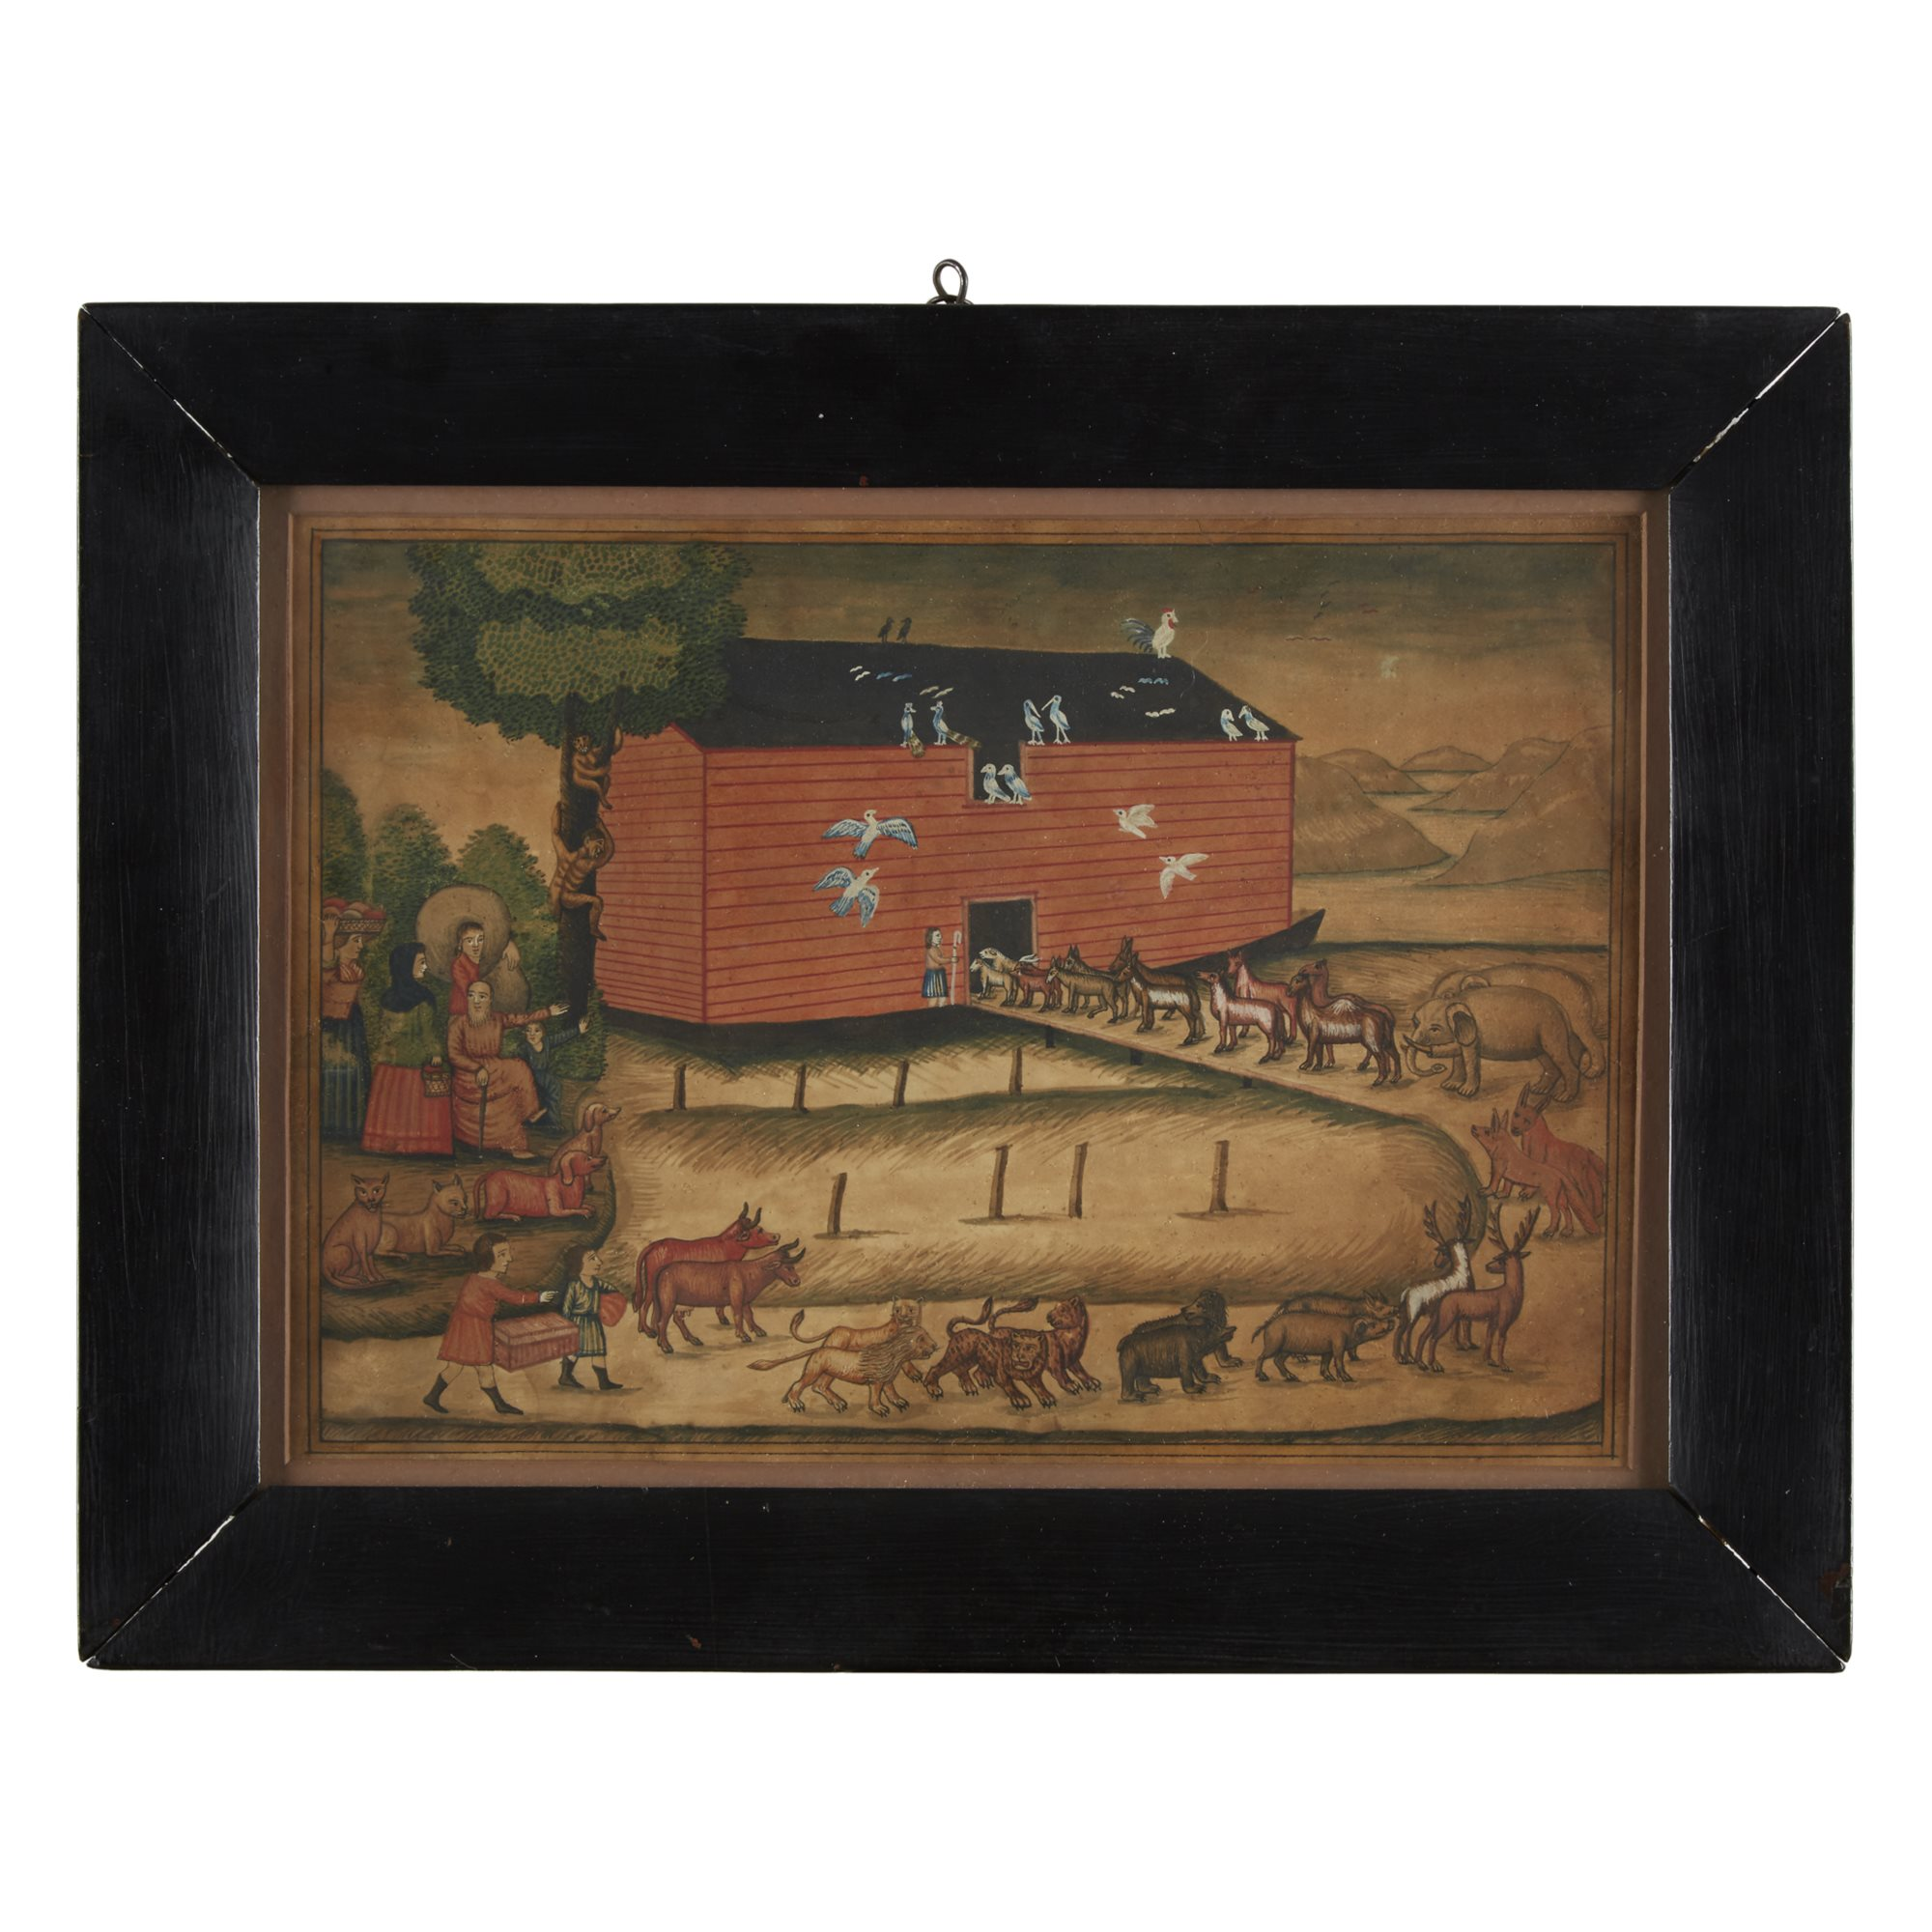 Lot 238: Attributed to John Landis (1805-c.1851), Noah's Ark, Possibly Lancaster, PA, Watercolor and ink on paper, $5,000-10,000, to be offered at Freeman's on 04/30/19